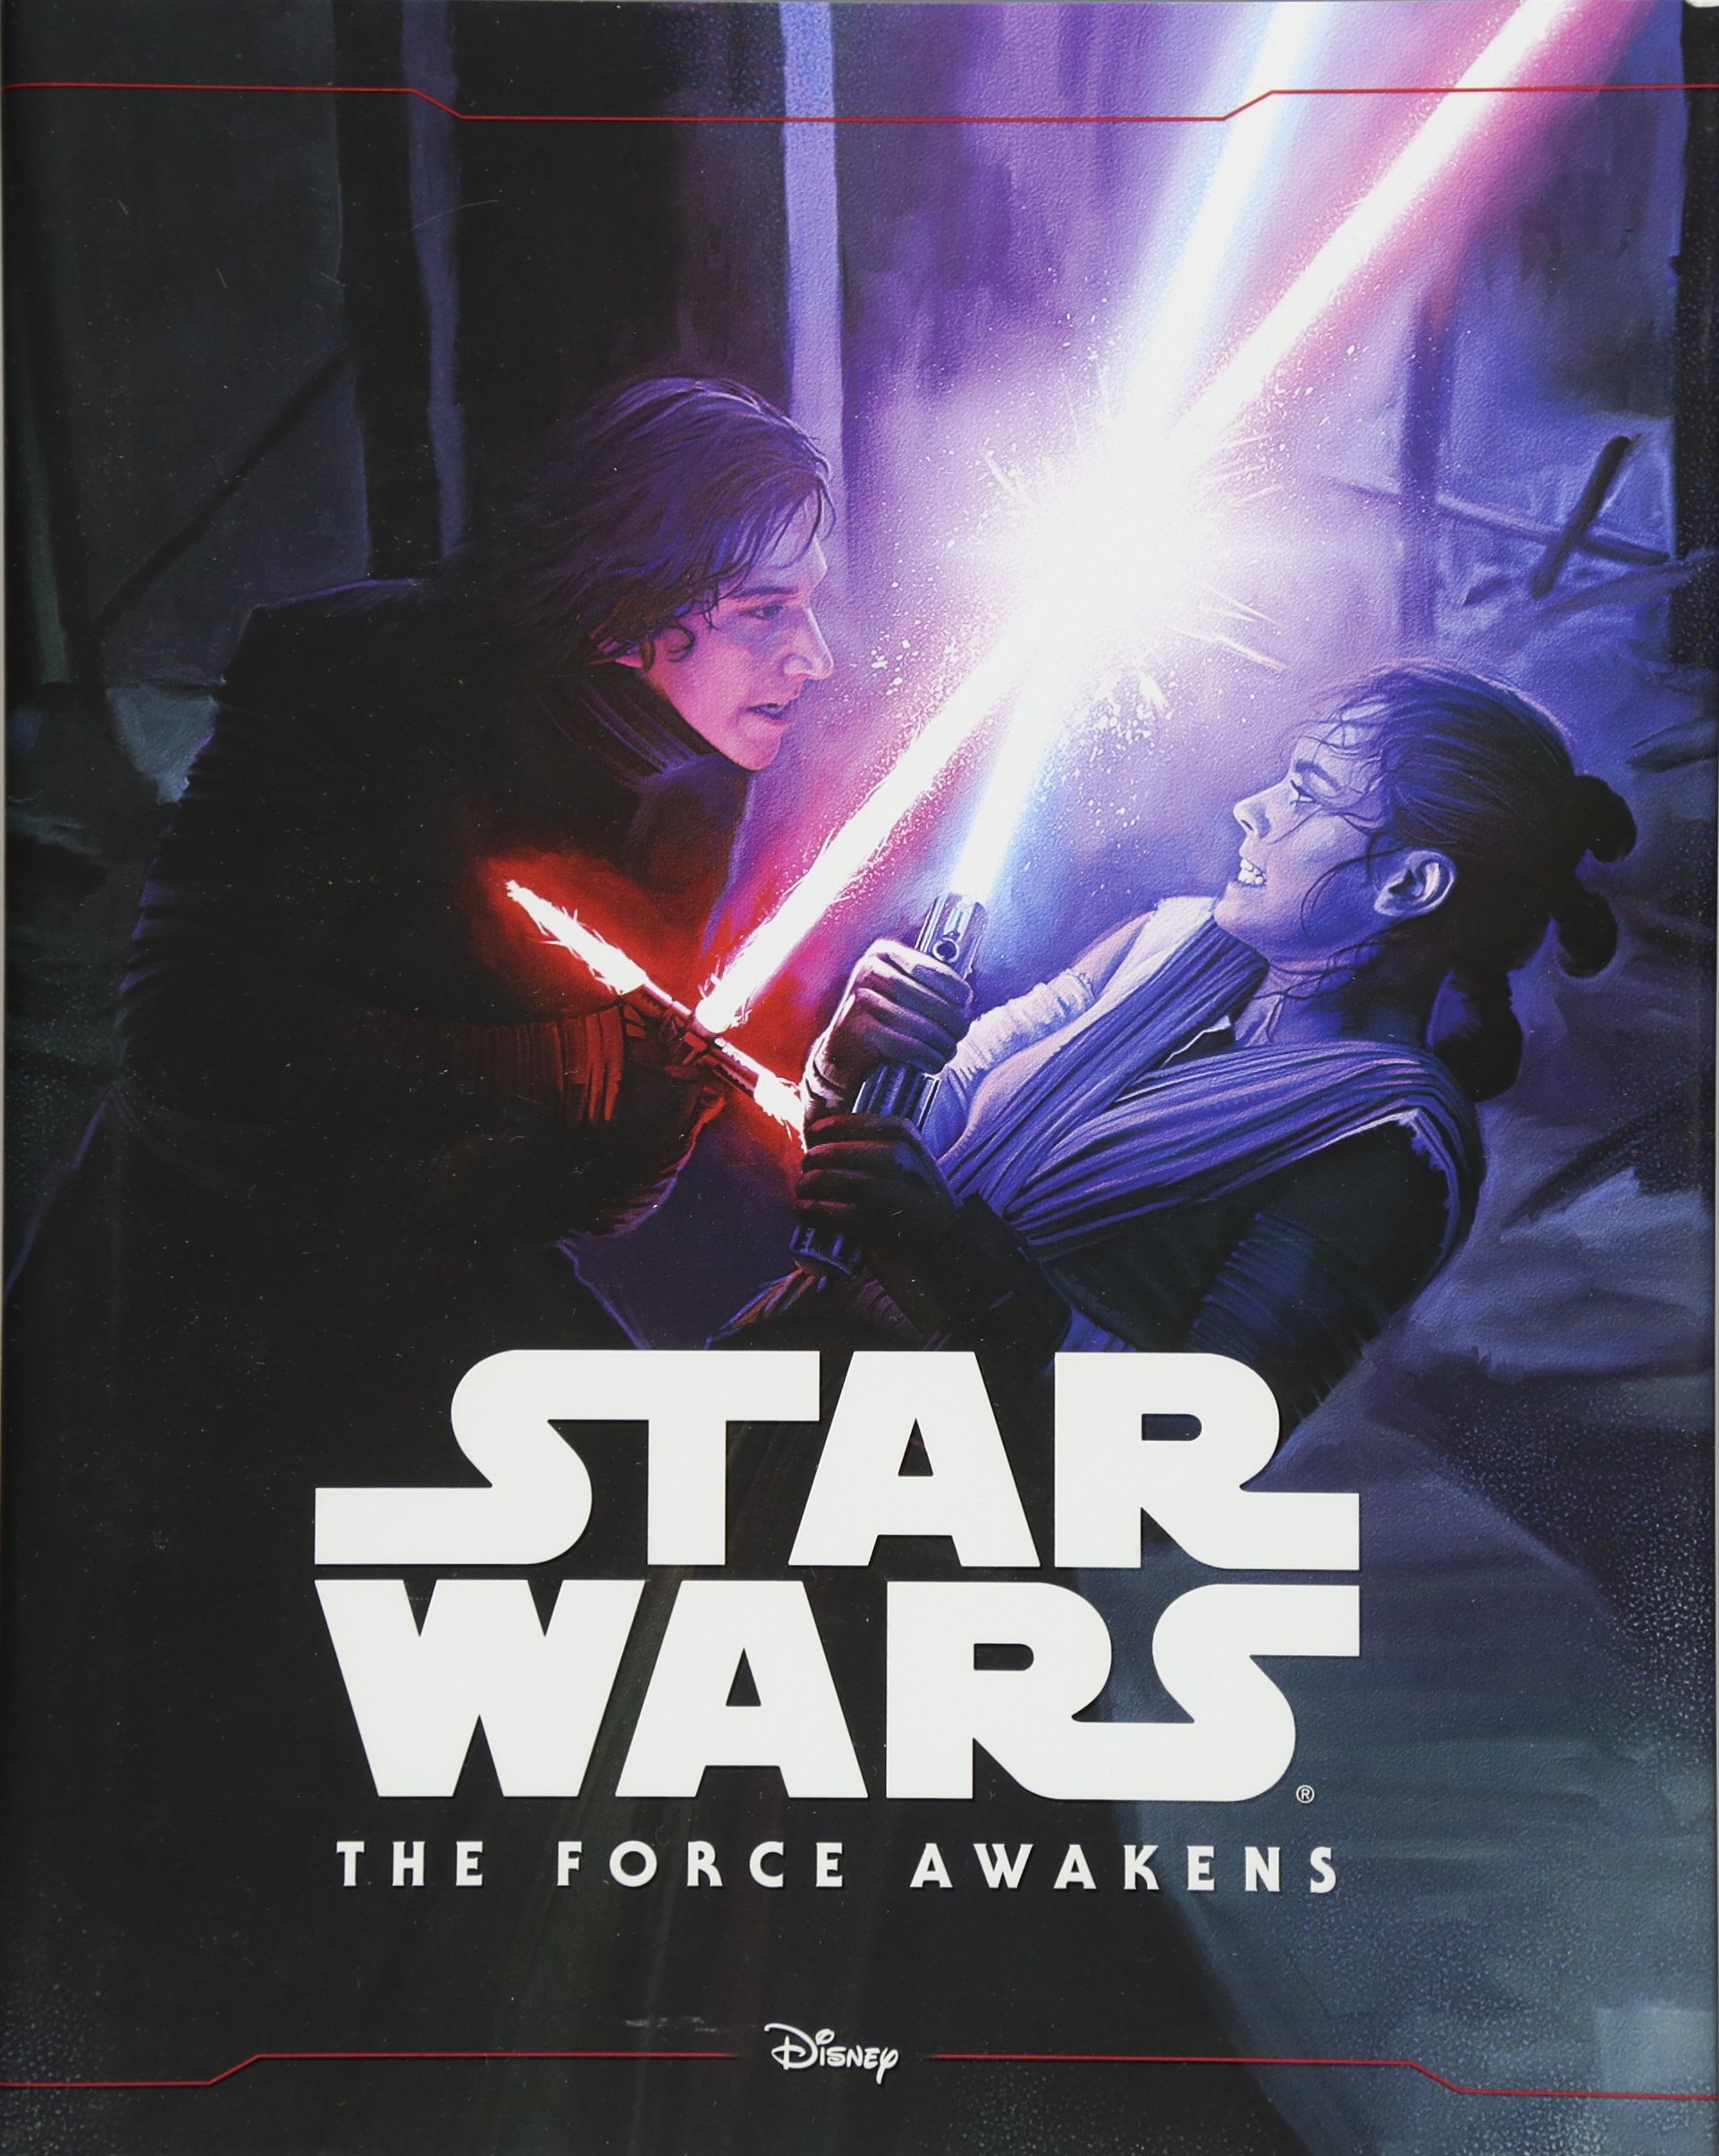 Star Wars: The Force Awakens (Storybook)